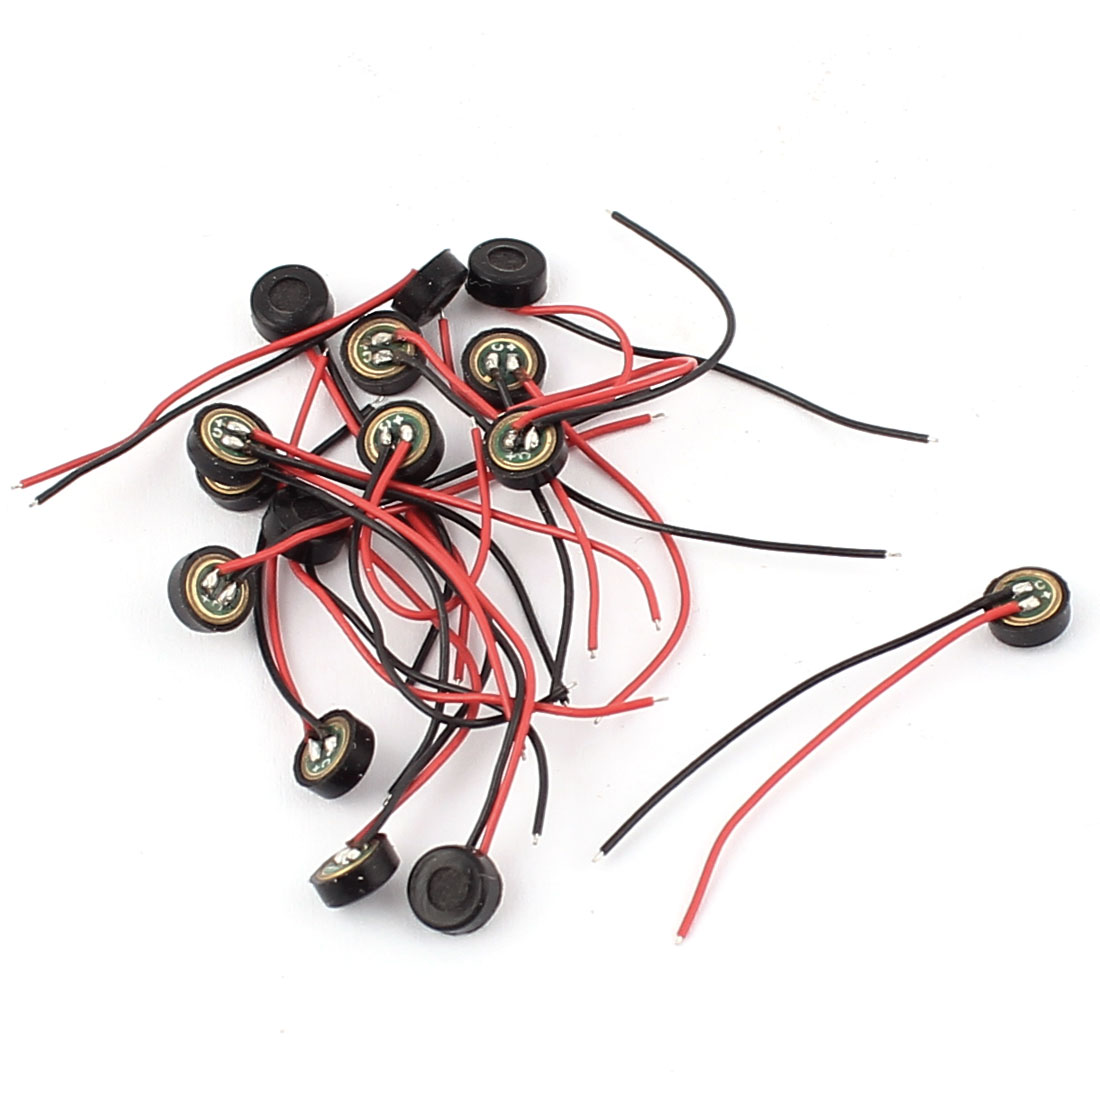 15 Pcs 4.5mm x 2mm Wire Cable MIC Capsule Electret Condenser Microphone